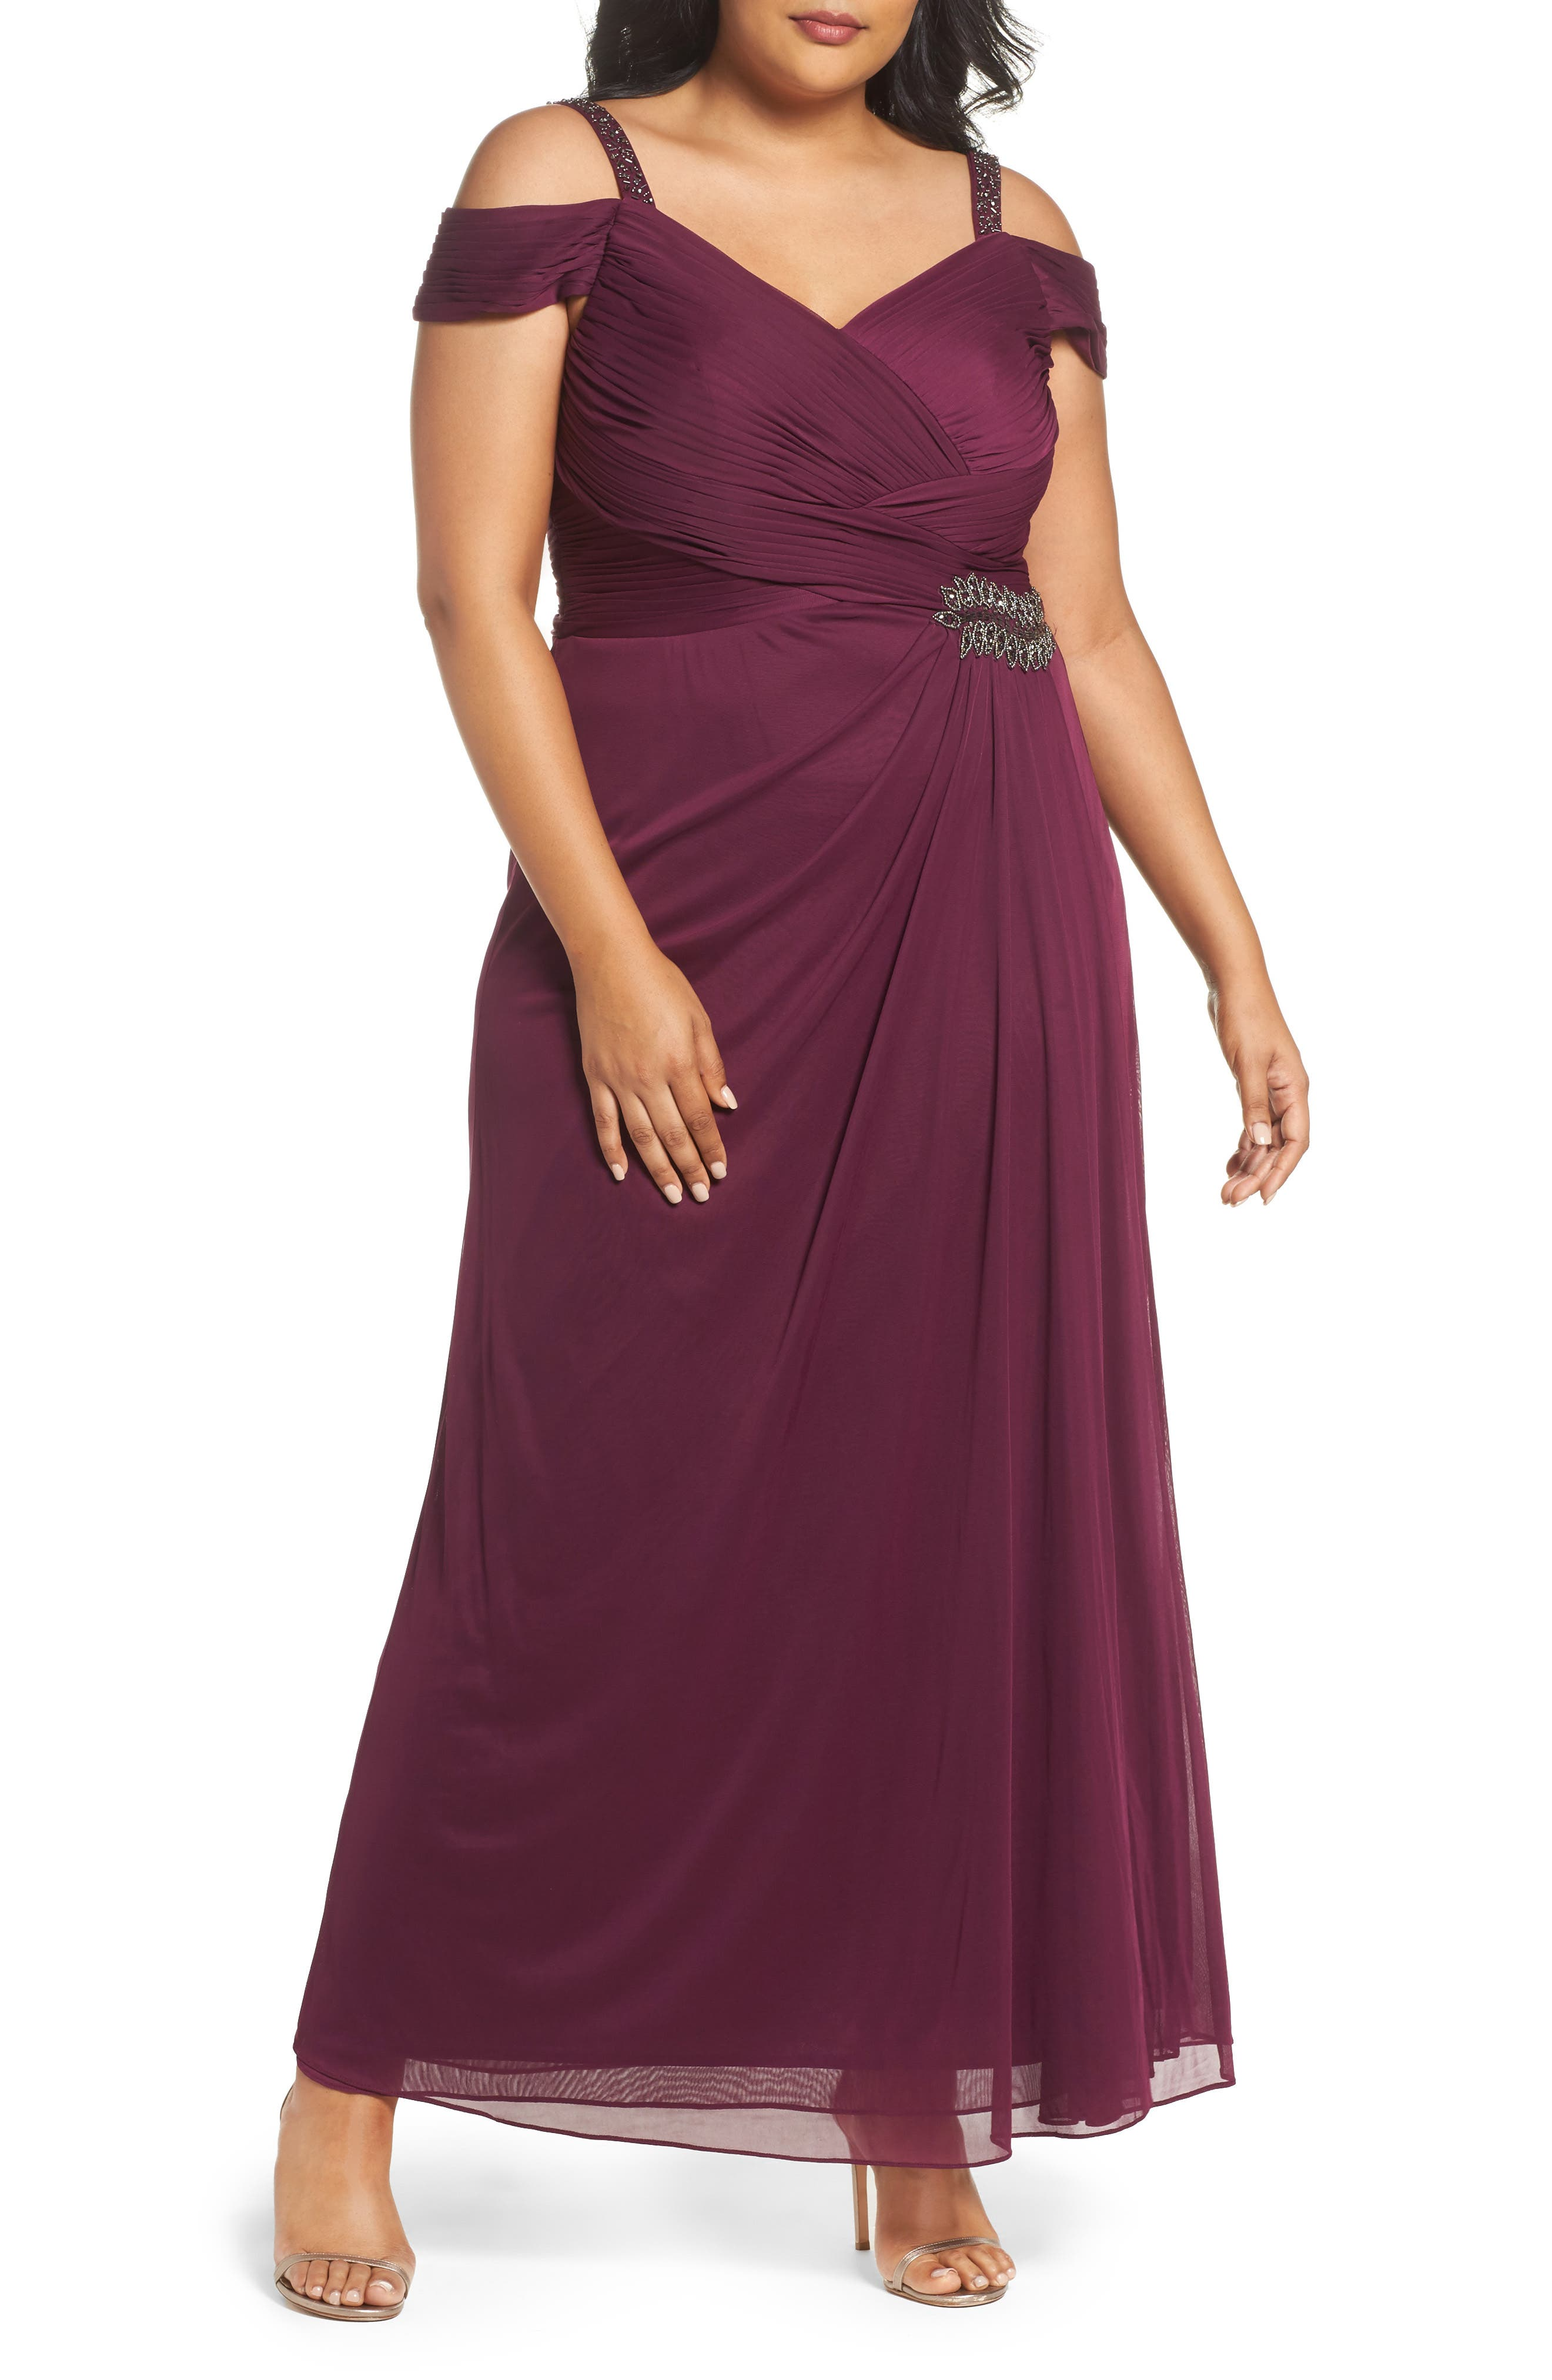 Alternate Image 1 Selected - Alex Evenings Embellished Cold Shoulder Gown (Plus Size)